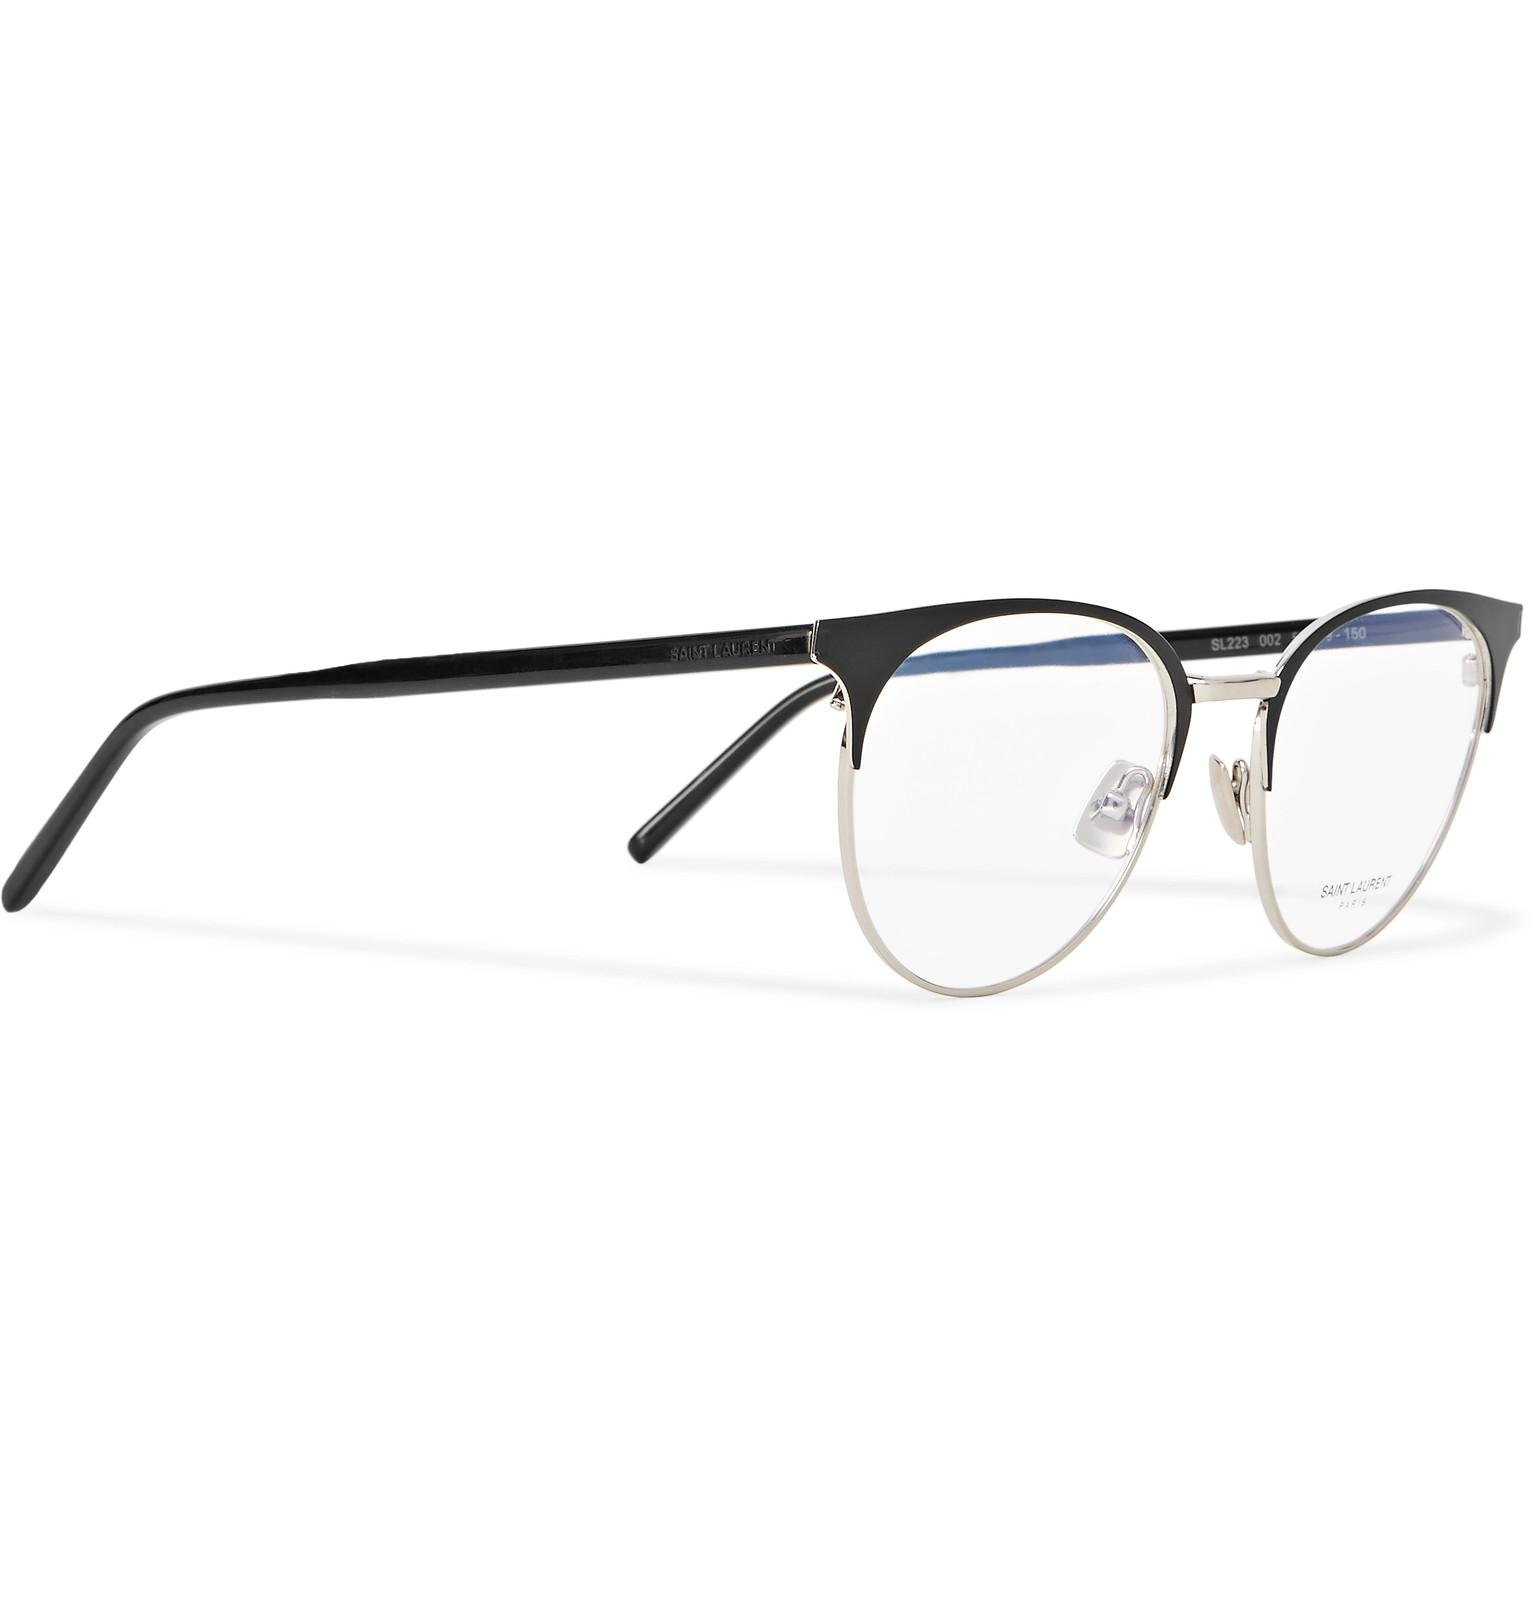 199082b681 Saint Laurent Round-frame Acetate And Silver-tone Optical Glasses in ...